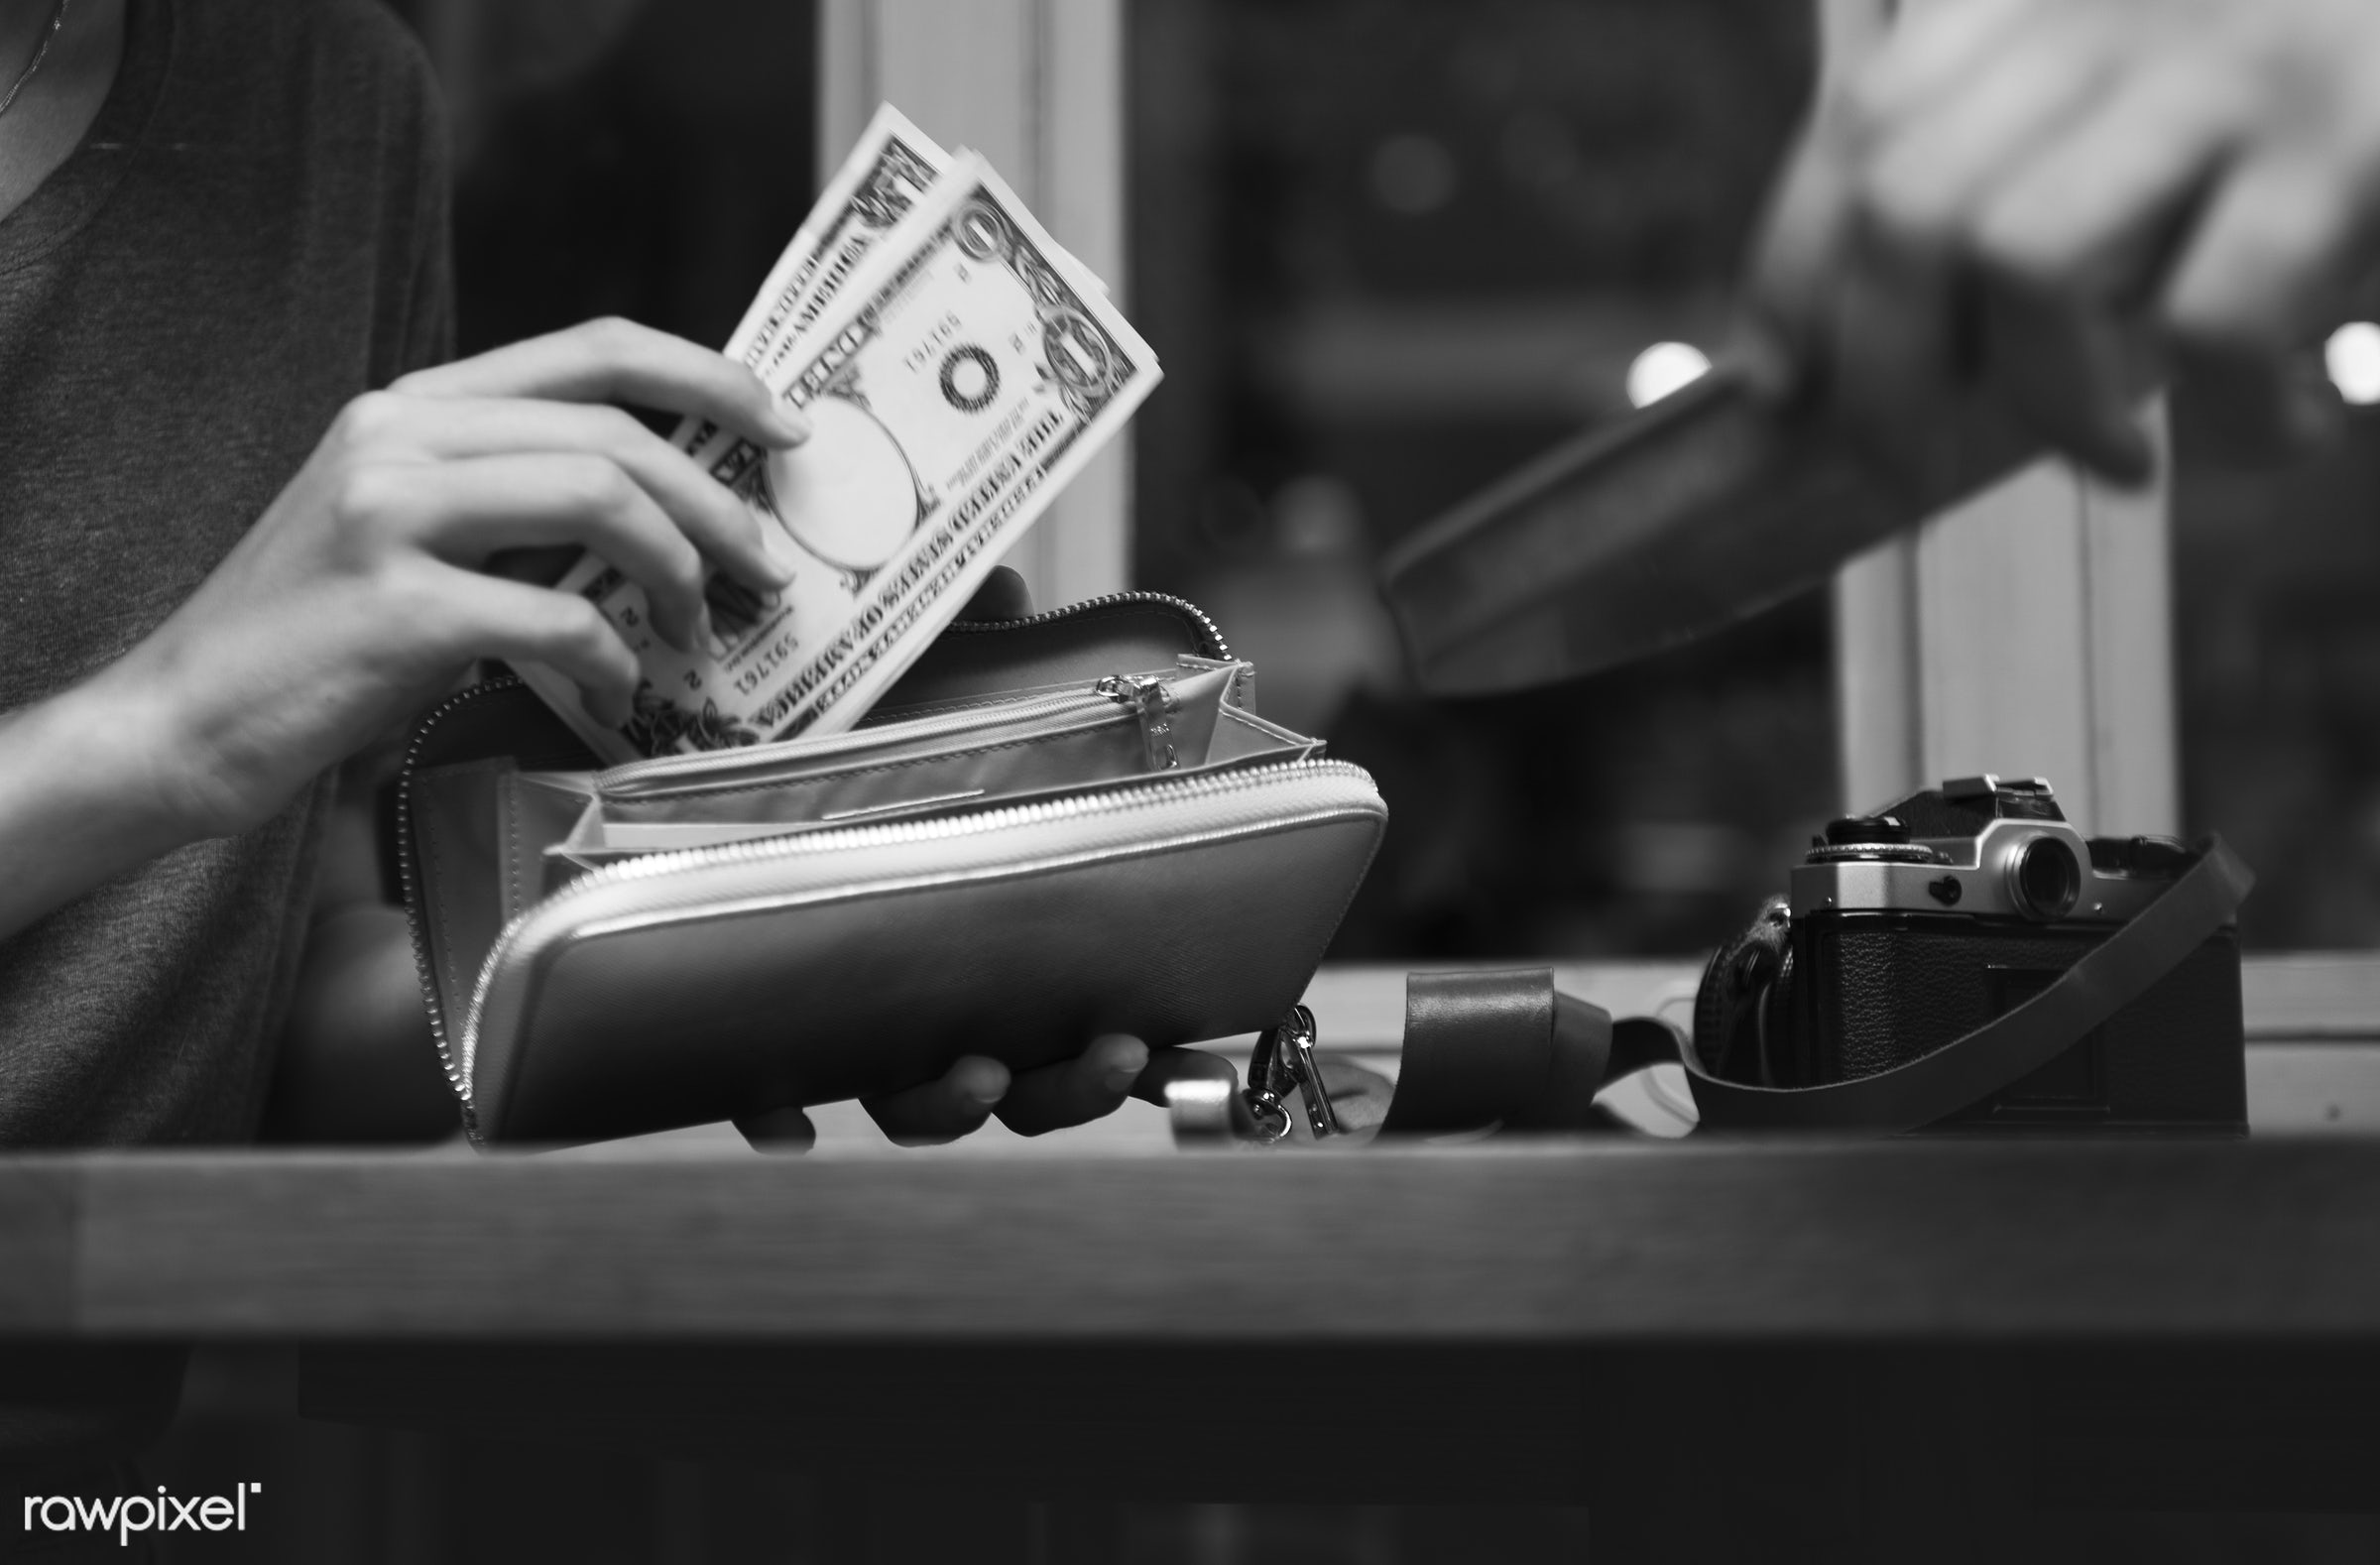 purse, bill, date, restaurant, wallet, girl, woman, glass, money, paying, check, payment, camera, dollars, table, window,...